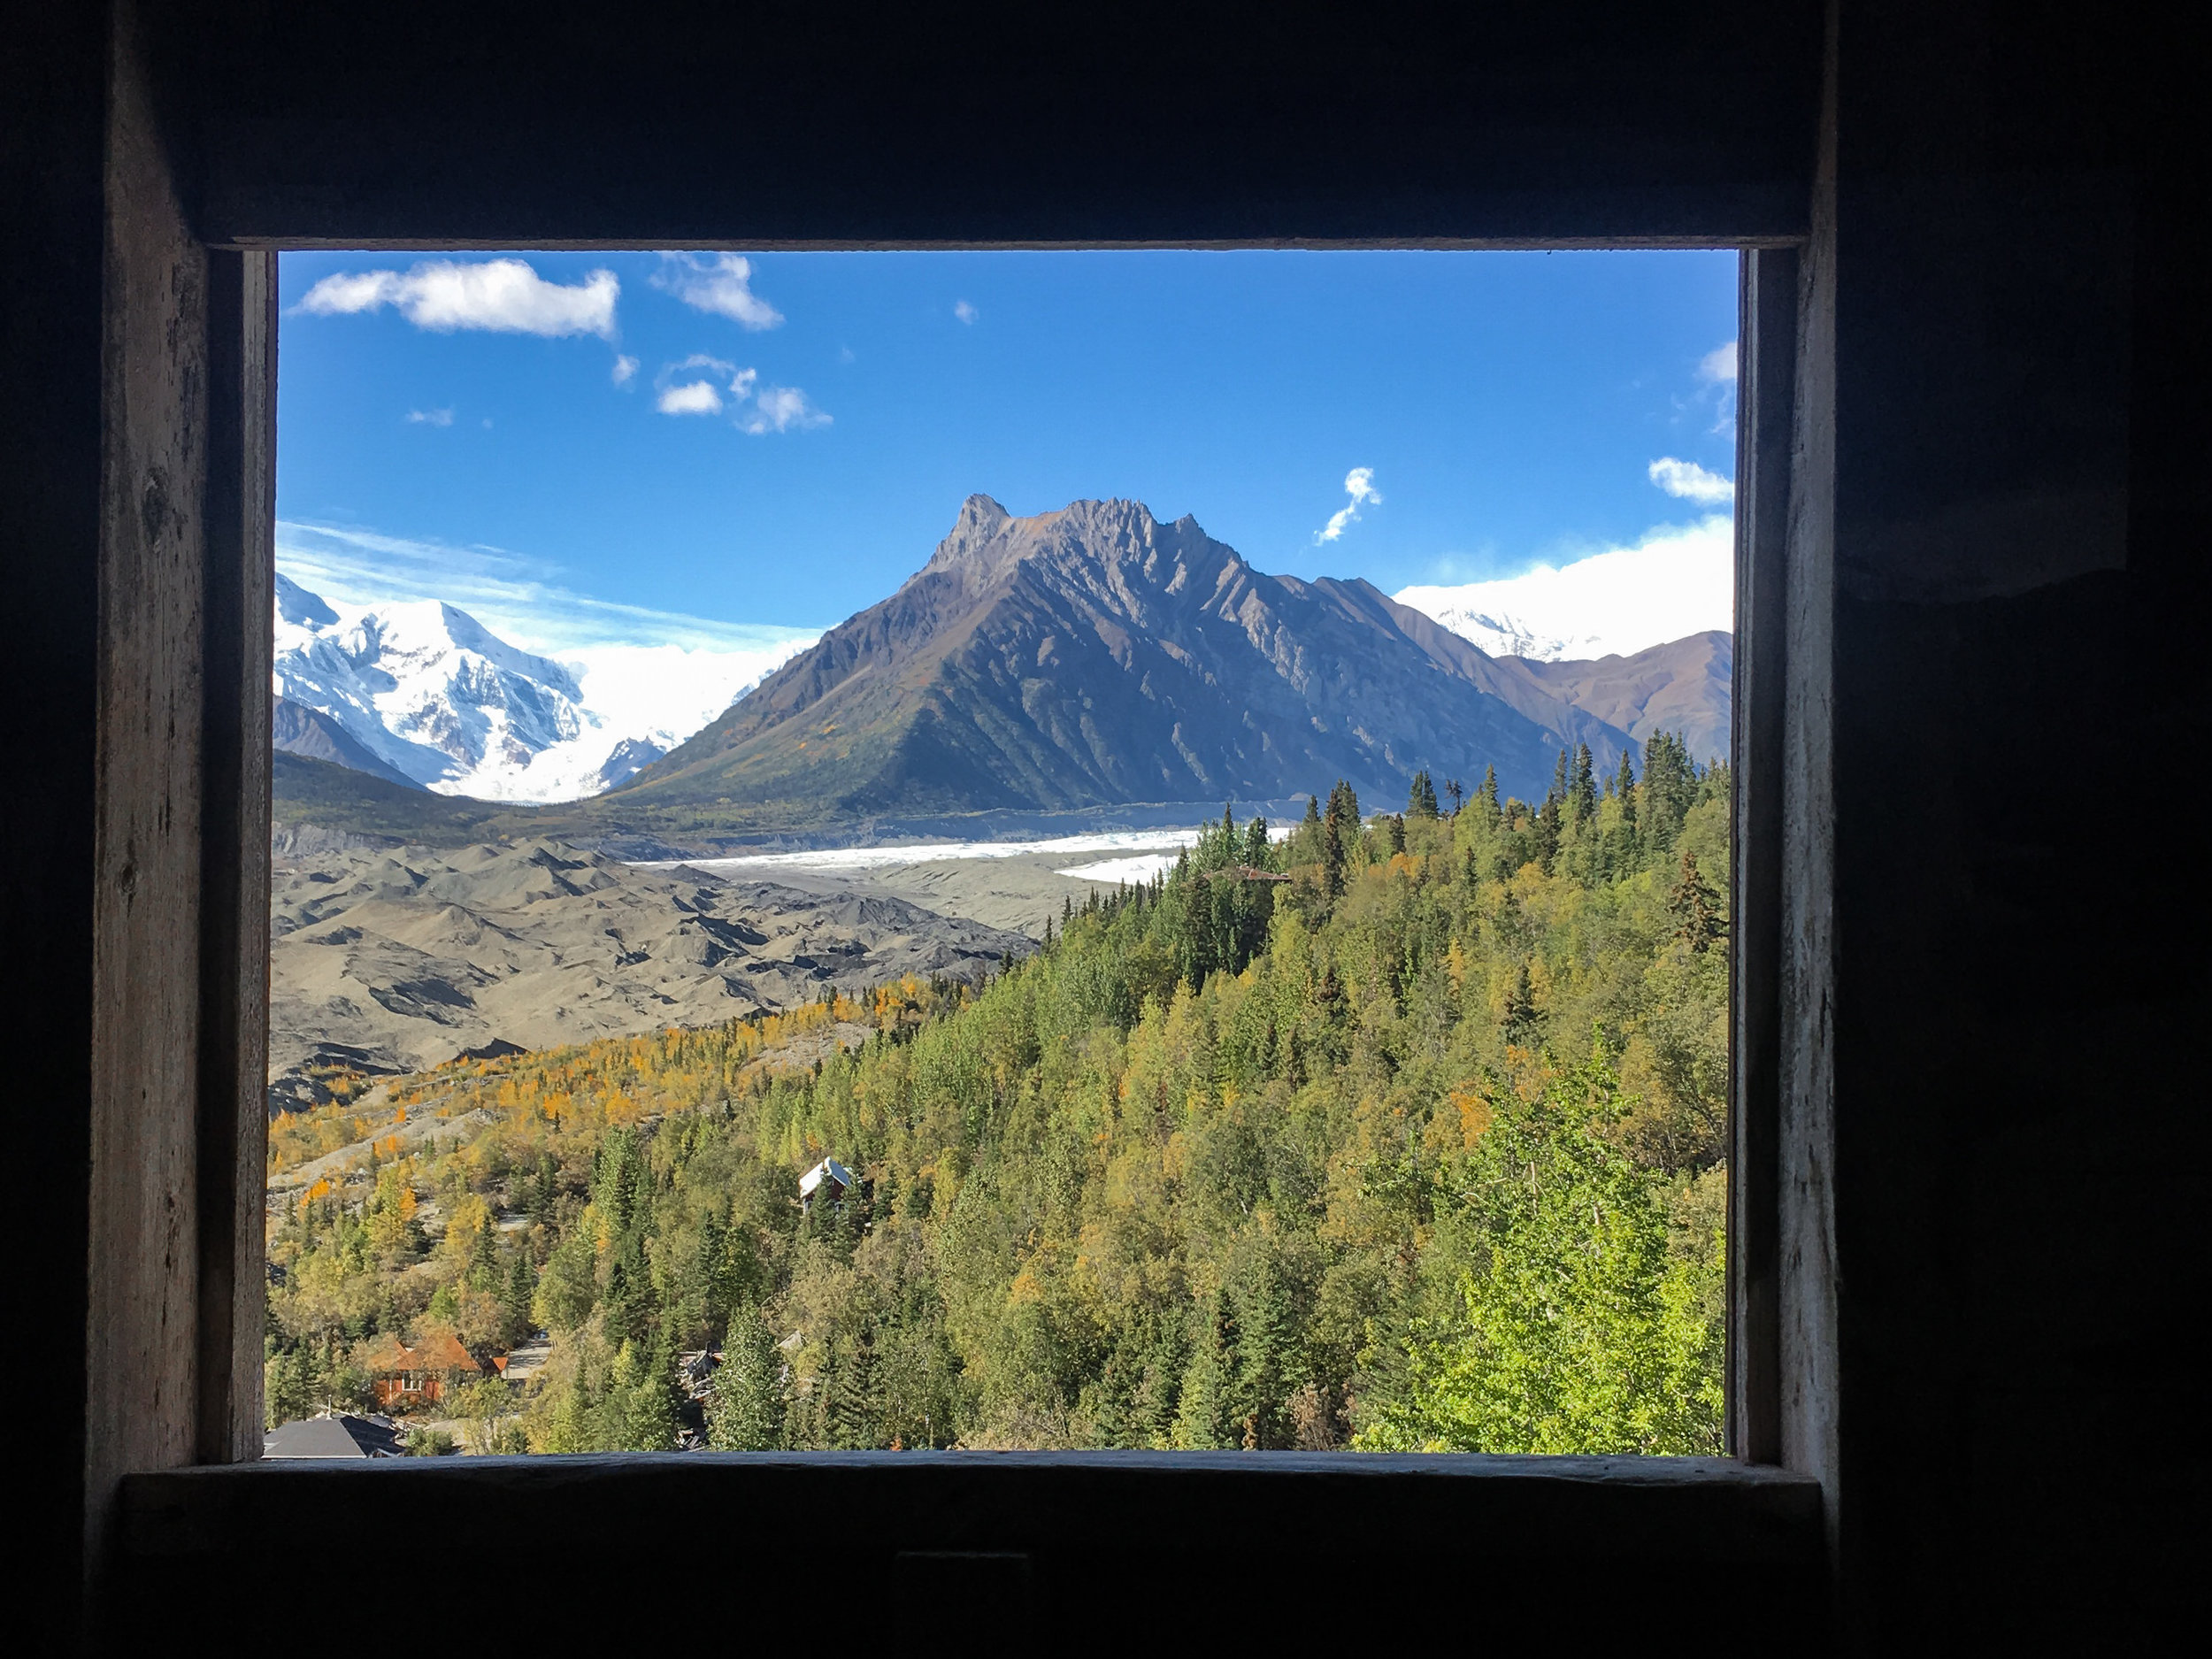 Historic Day-Trip: Kennecott Mill Building, View of Kennicott Glacier, Donoho Peak, and Root Glacier